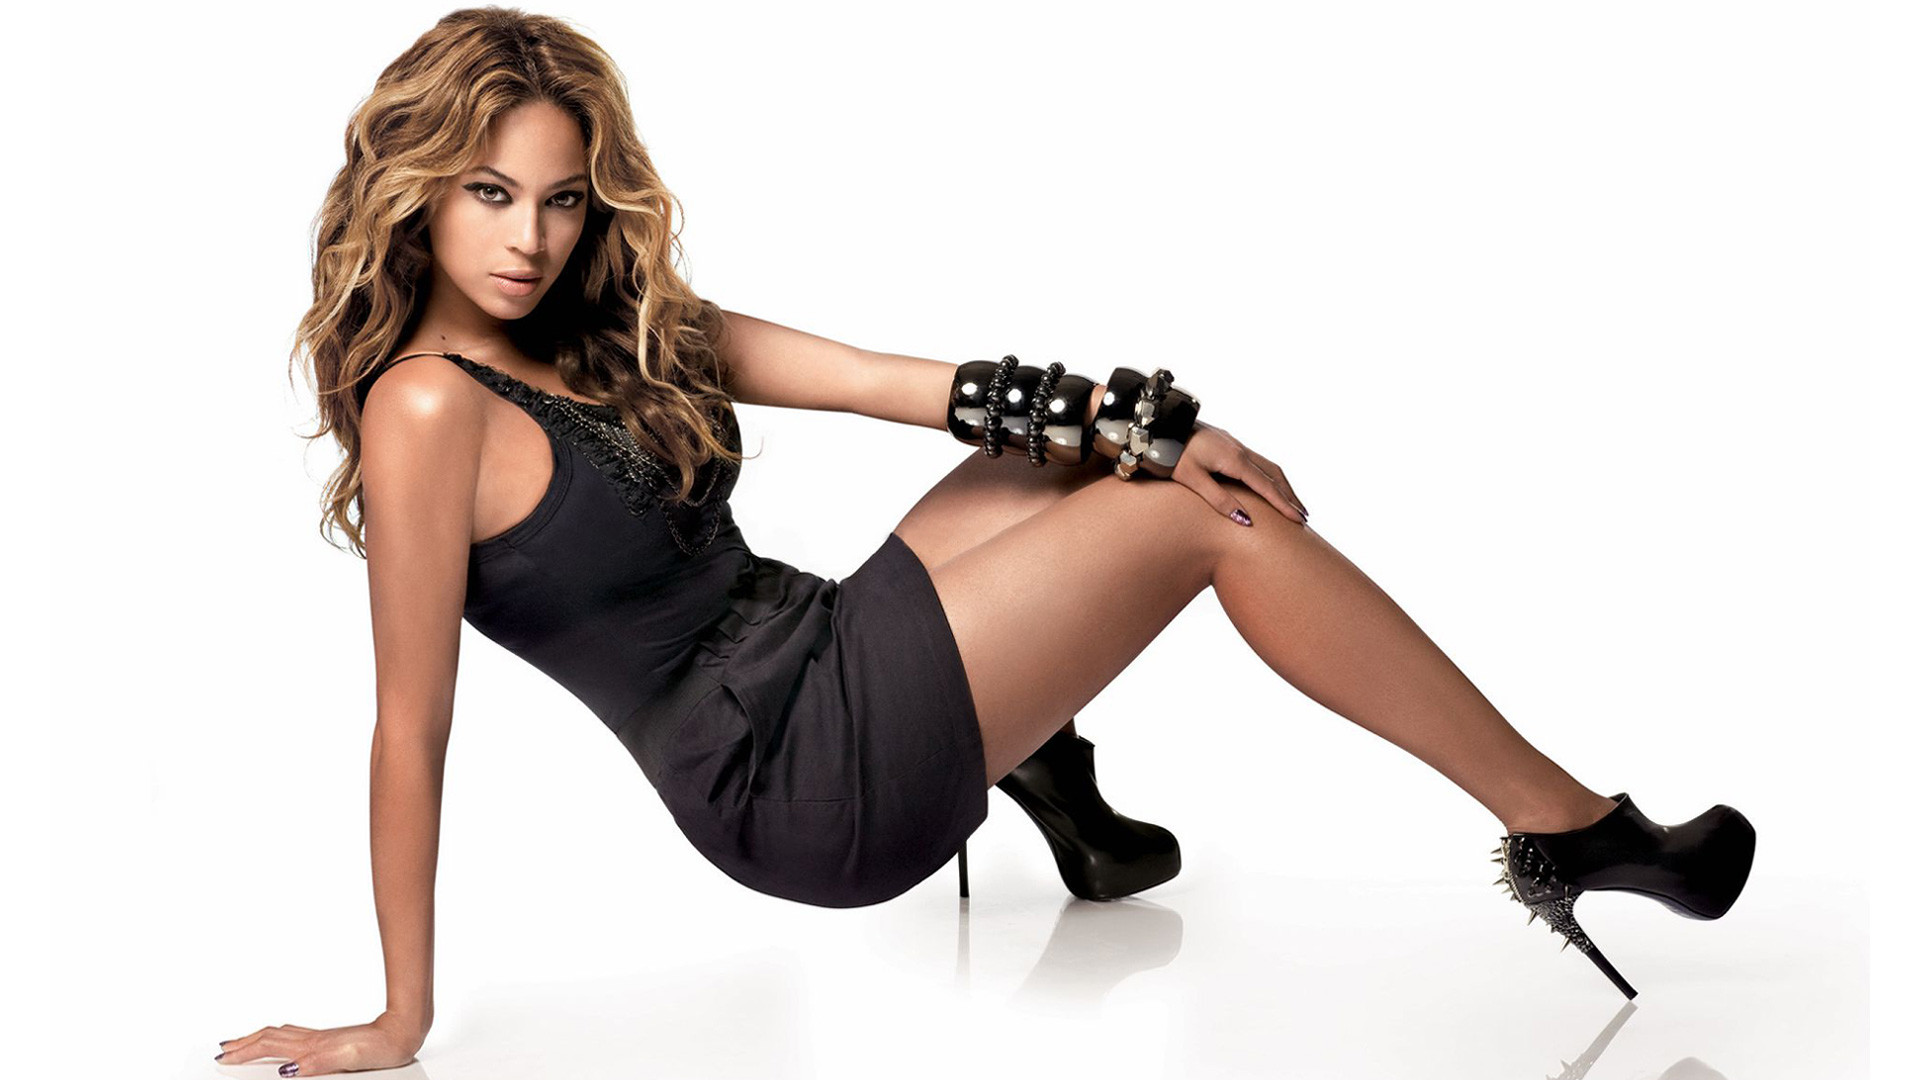 … beyonce black and white wallpaper beyonce bedroom wallpaper beyonce and jay  z wallpapers. christina aguilera hd photos